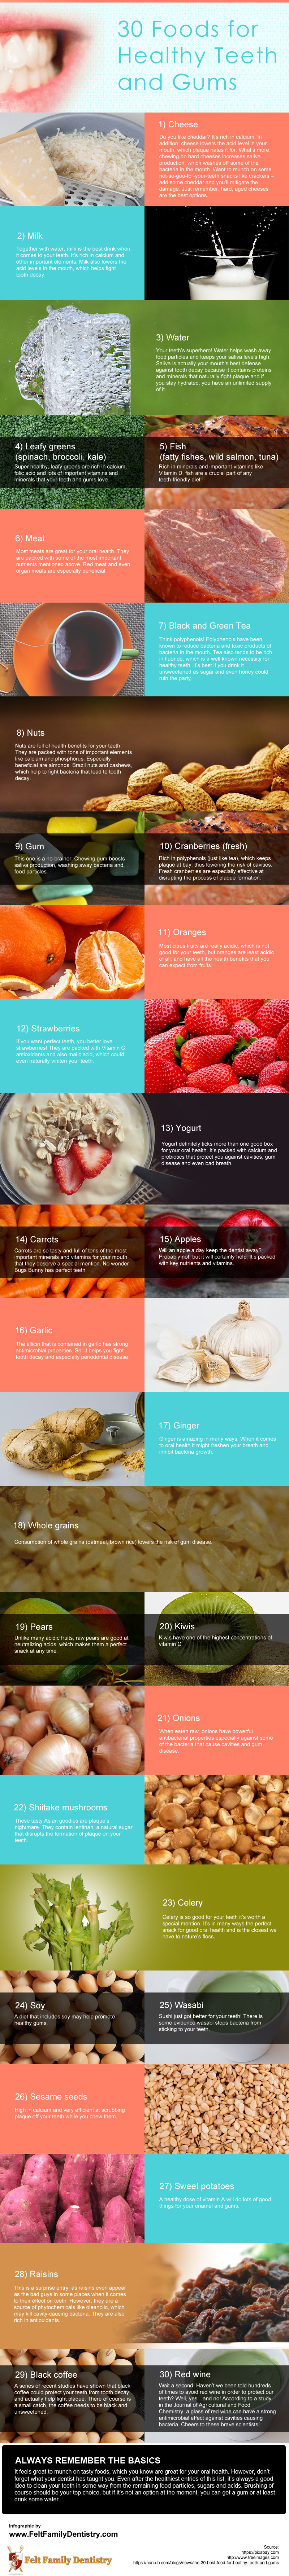 30 Foods for Healthy Teeth and Gums [infographic]